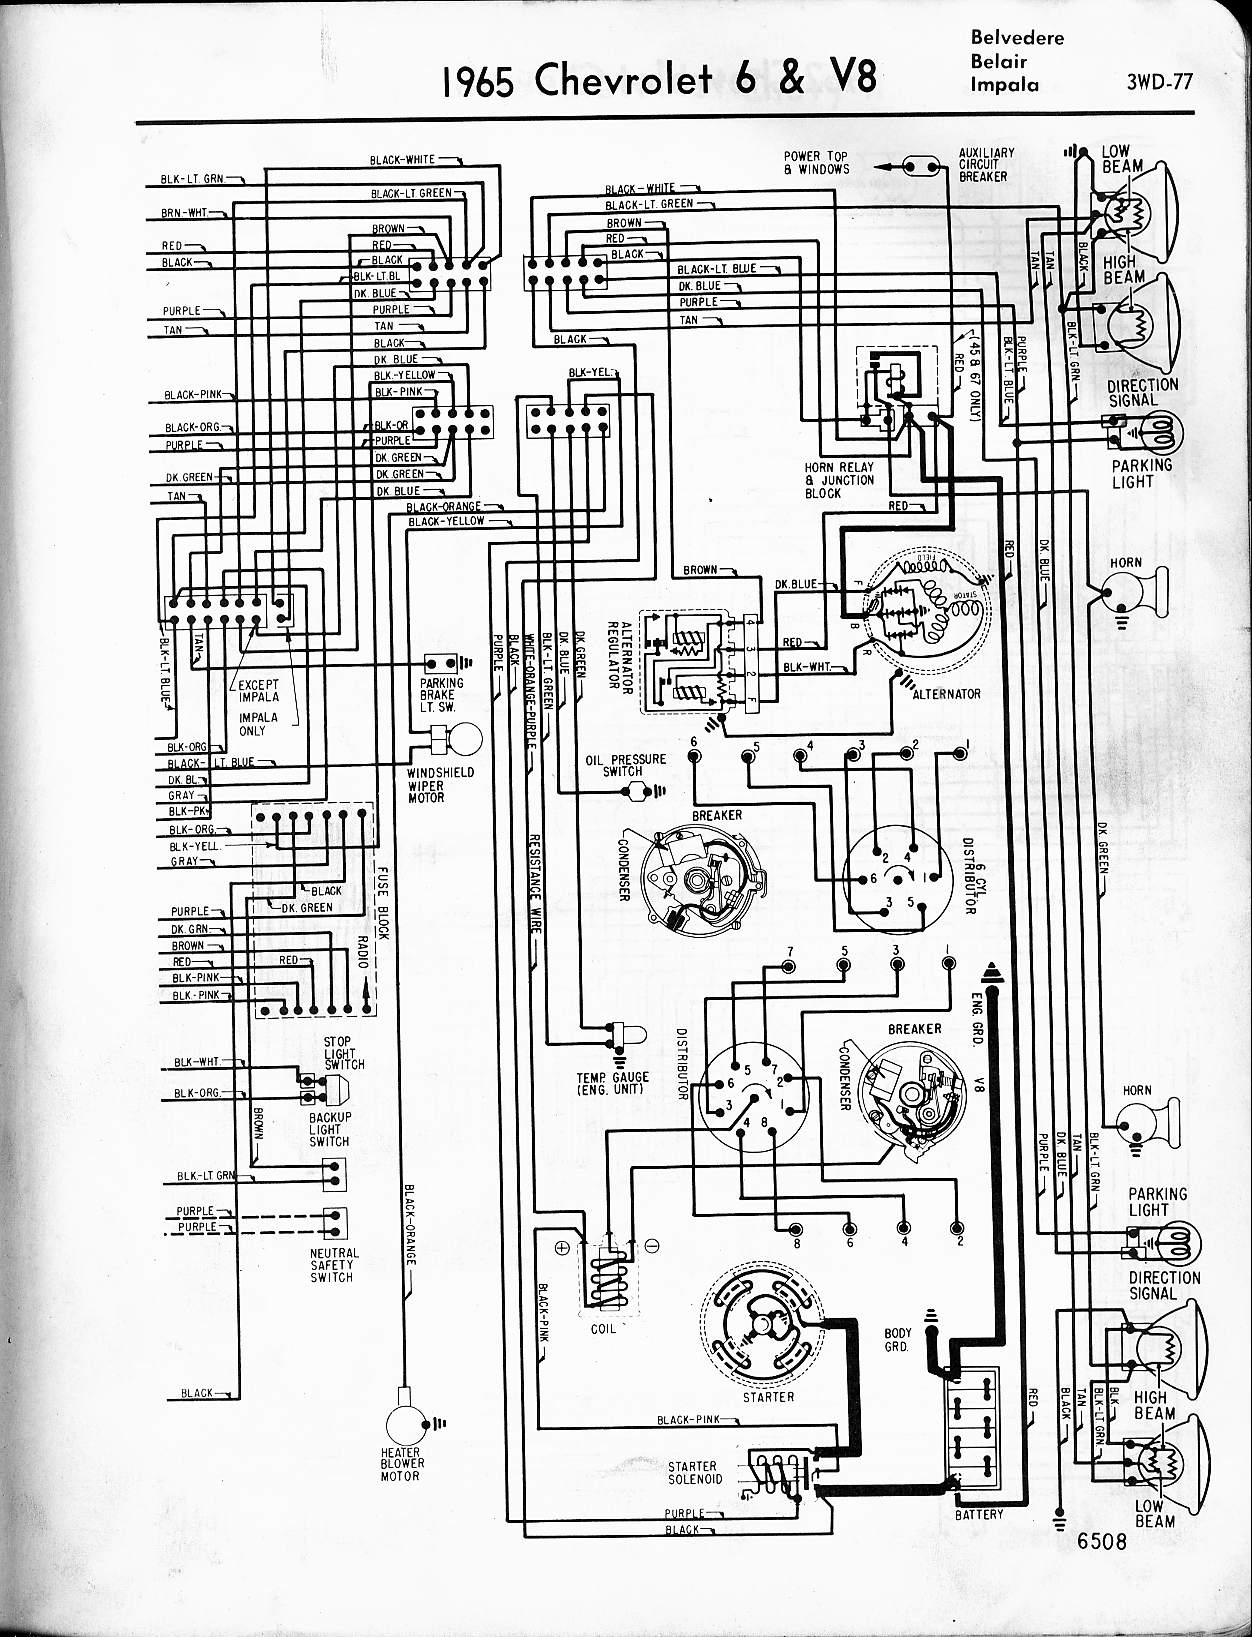 Chevy Diagrams Electrical Drawings Wiring Diagrams 71 Chevelle Door Ajar  Switch Wiring Diagram